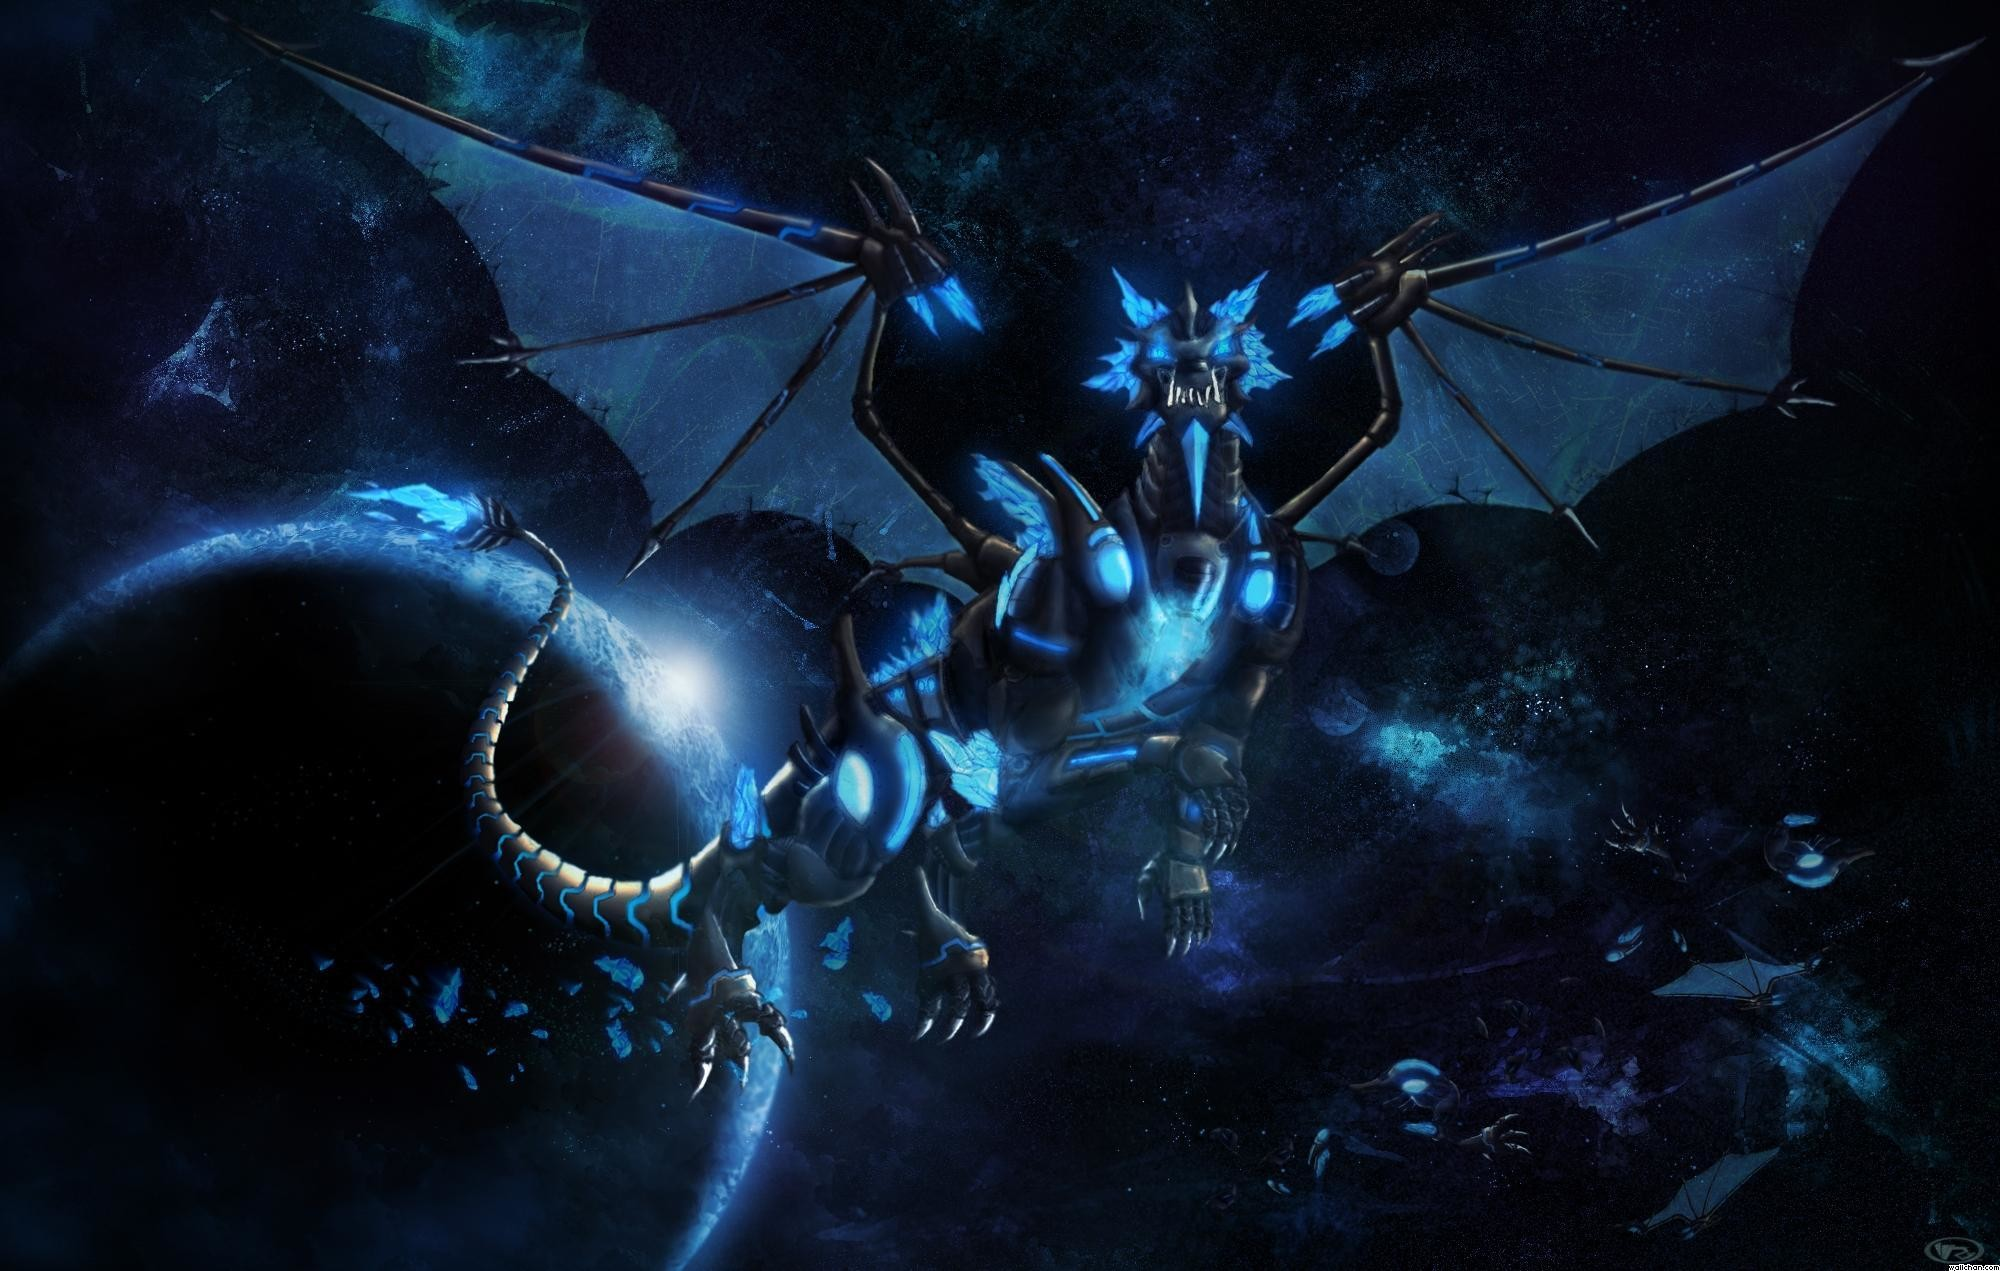 2000x1271 Wallpapers For > Blue Dragon Wallpaper Hd